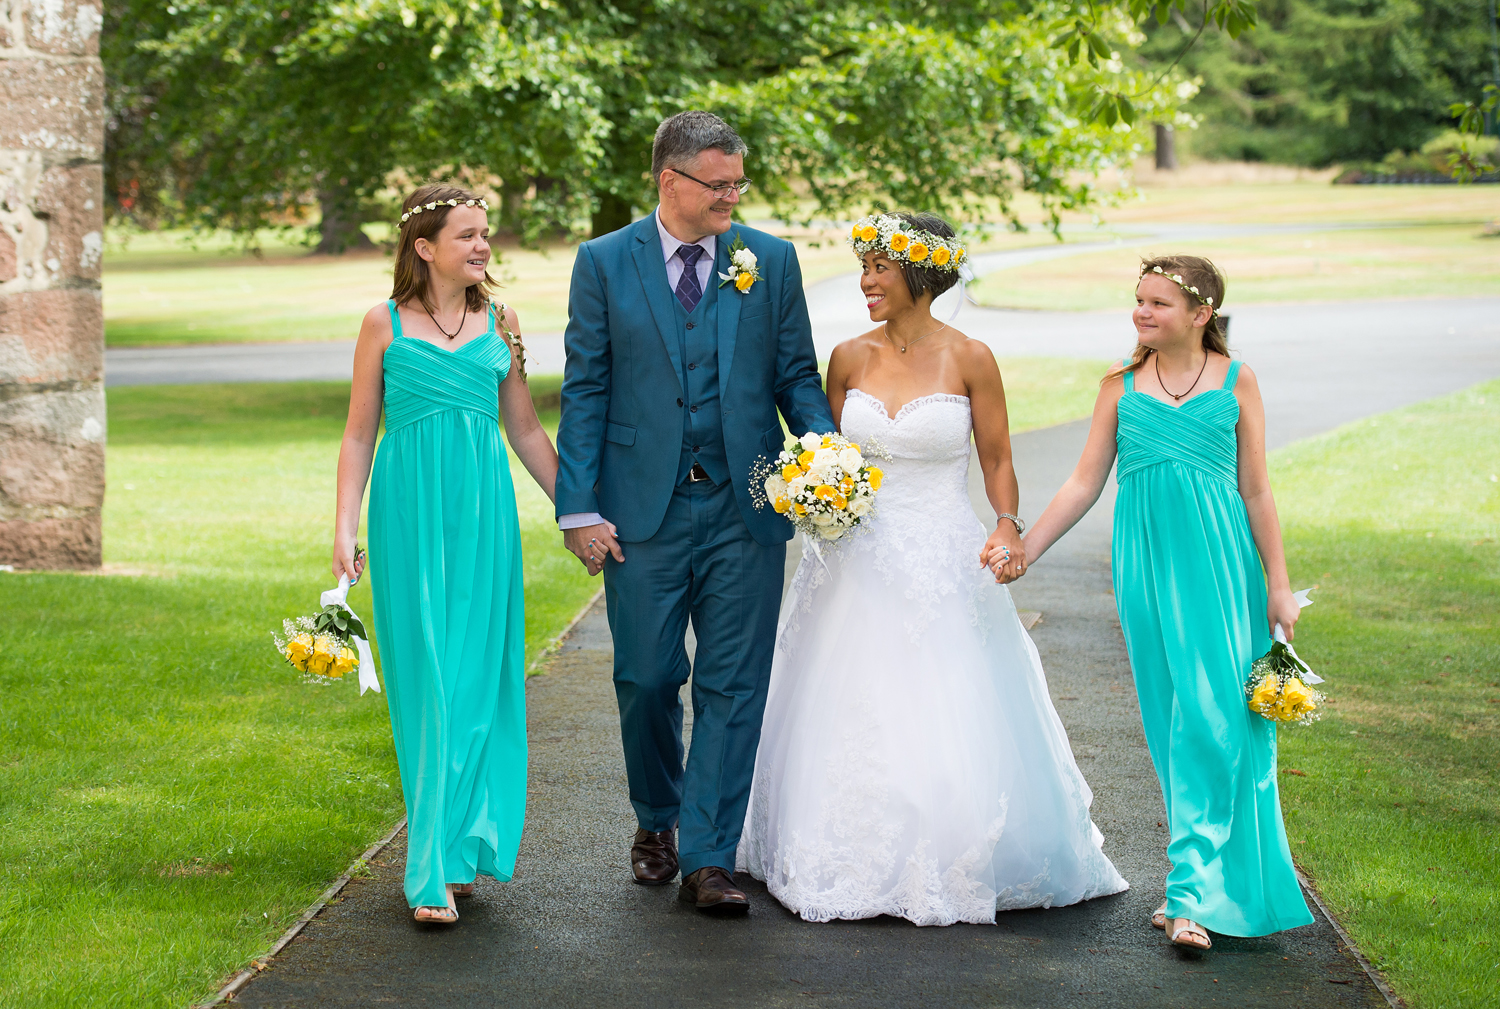 lancaster_golf_club_ashton_hall_weddings_28.jpg